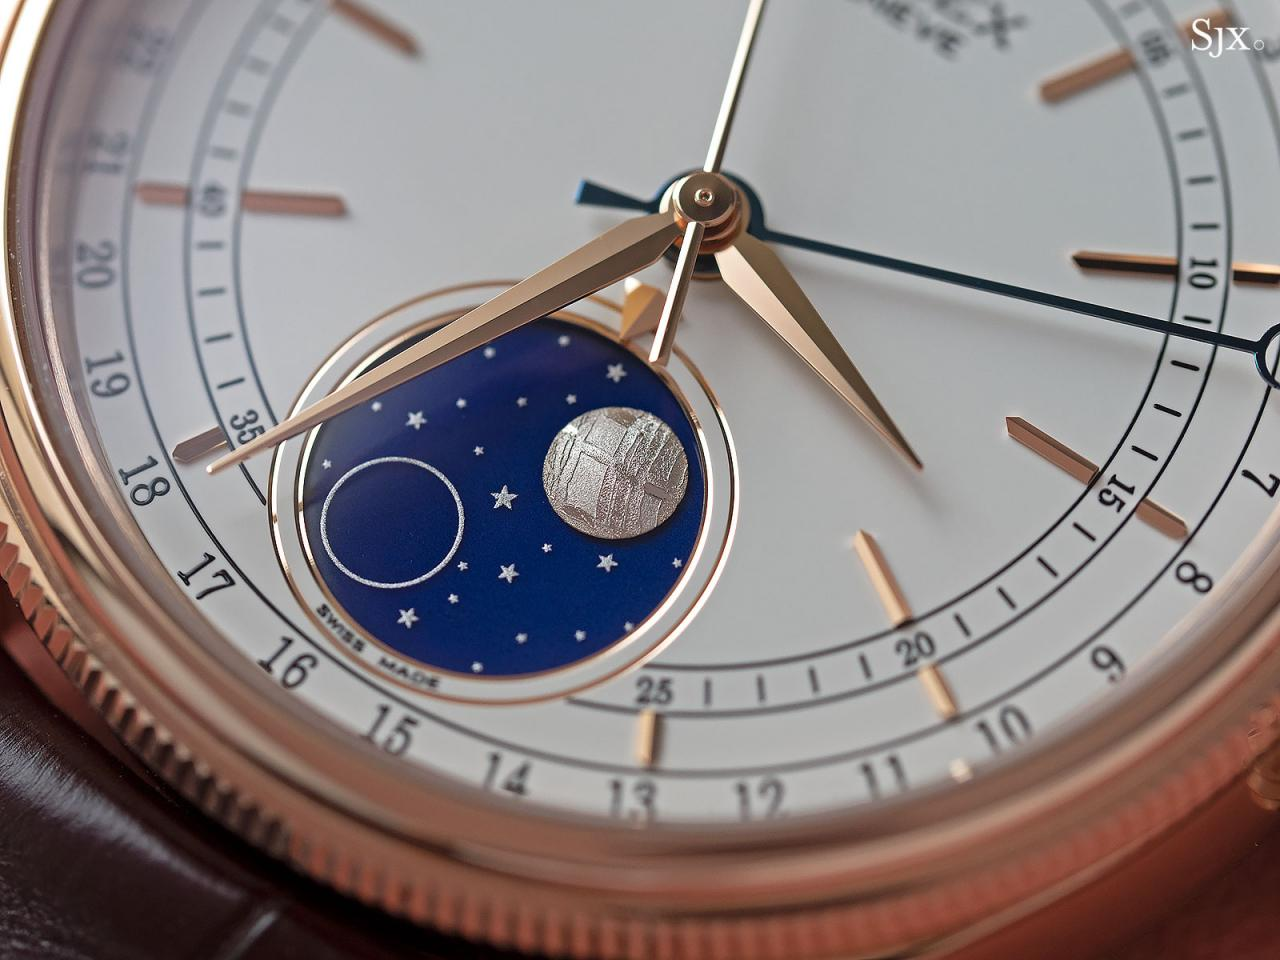 Rolex Cellini Moonphase 50535 review 2